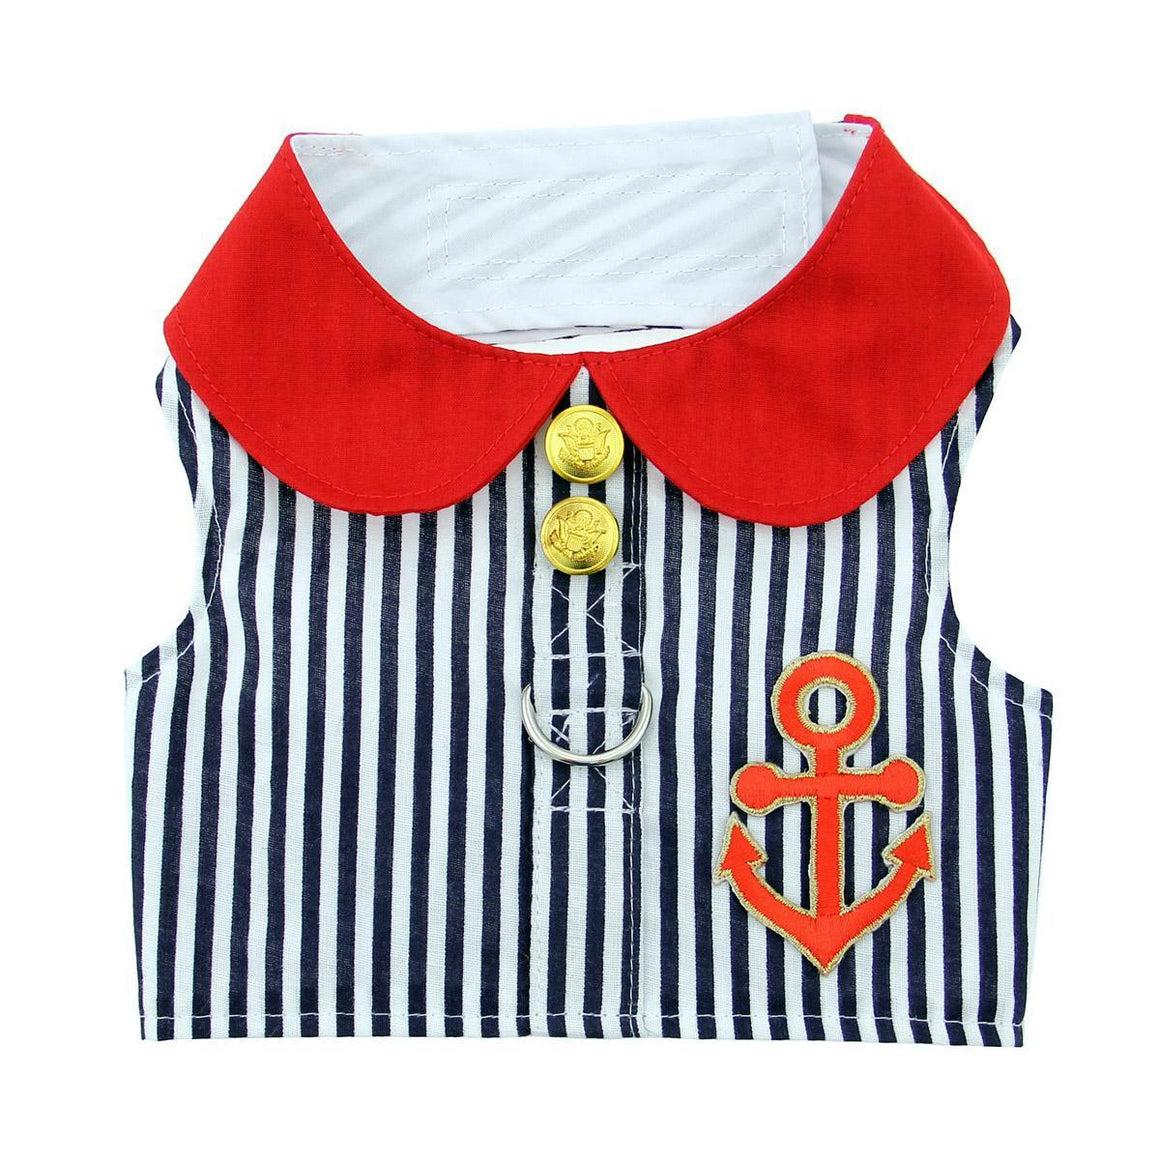 Doggie Design Sailor Boy Fabric Harness with Matching Leash Dog Shirt-Le Pup Pet Supplies and Grooming